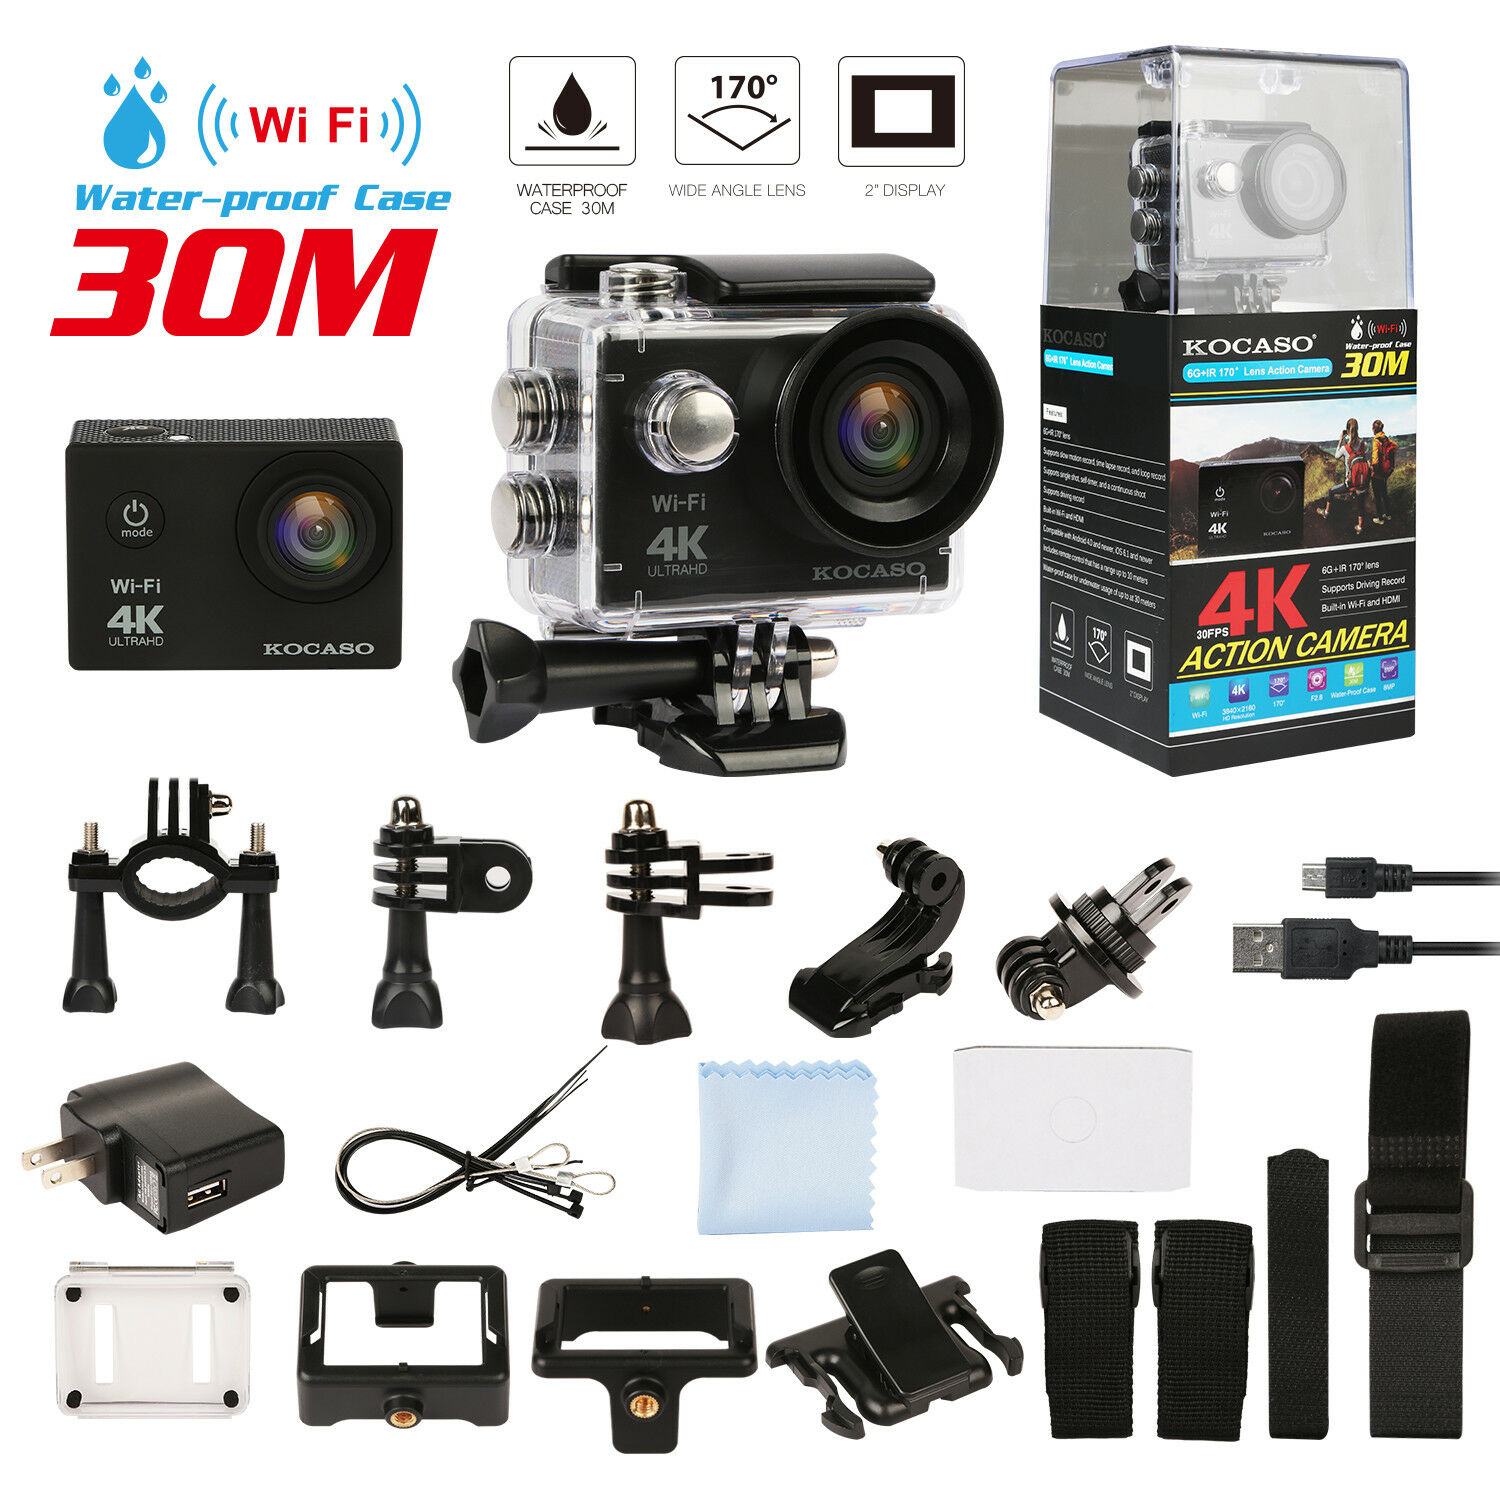 4K Ultra HD DV 1080p Sports Action Camera Waterproof + Full Accessory Bundle Featured